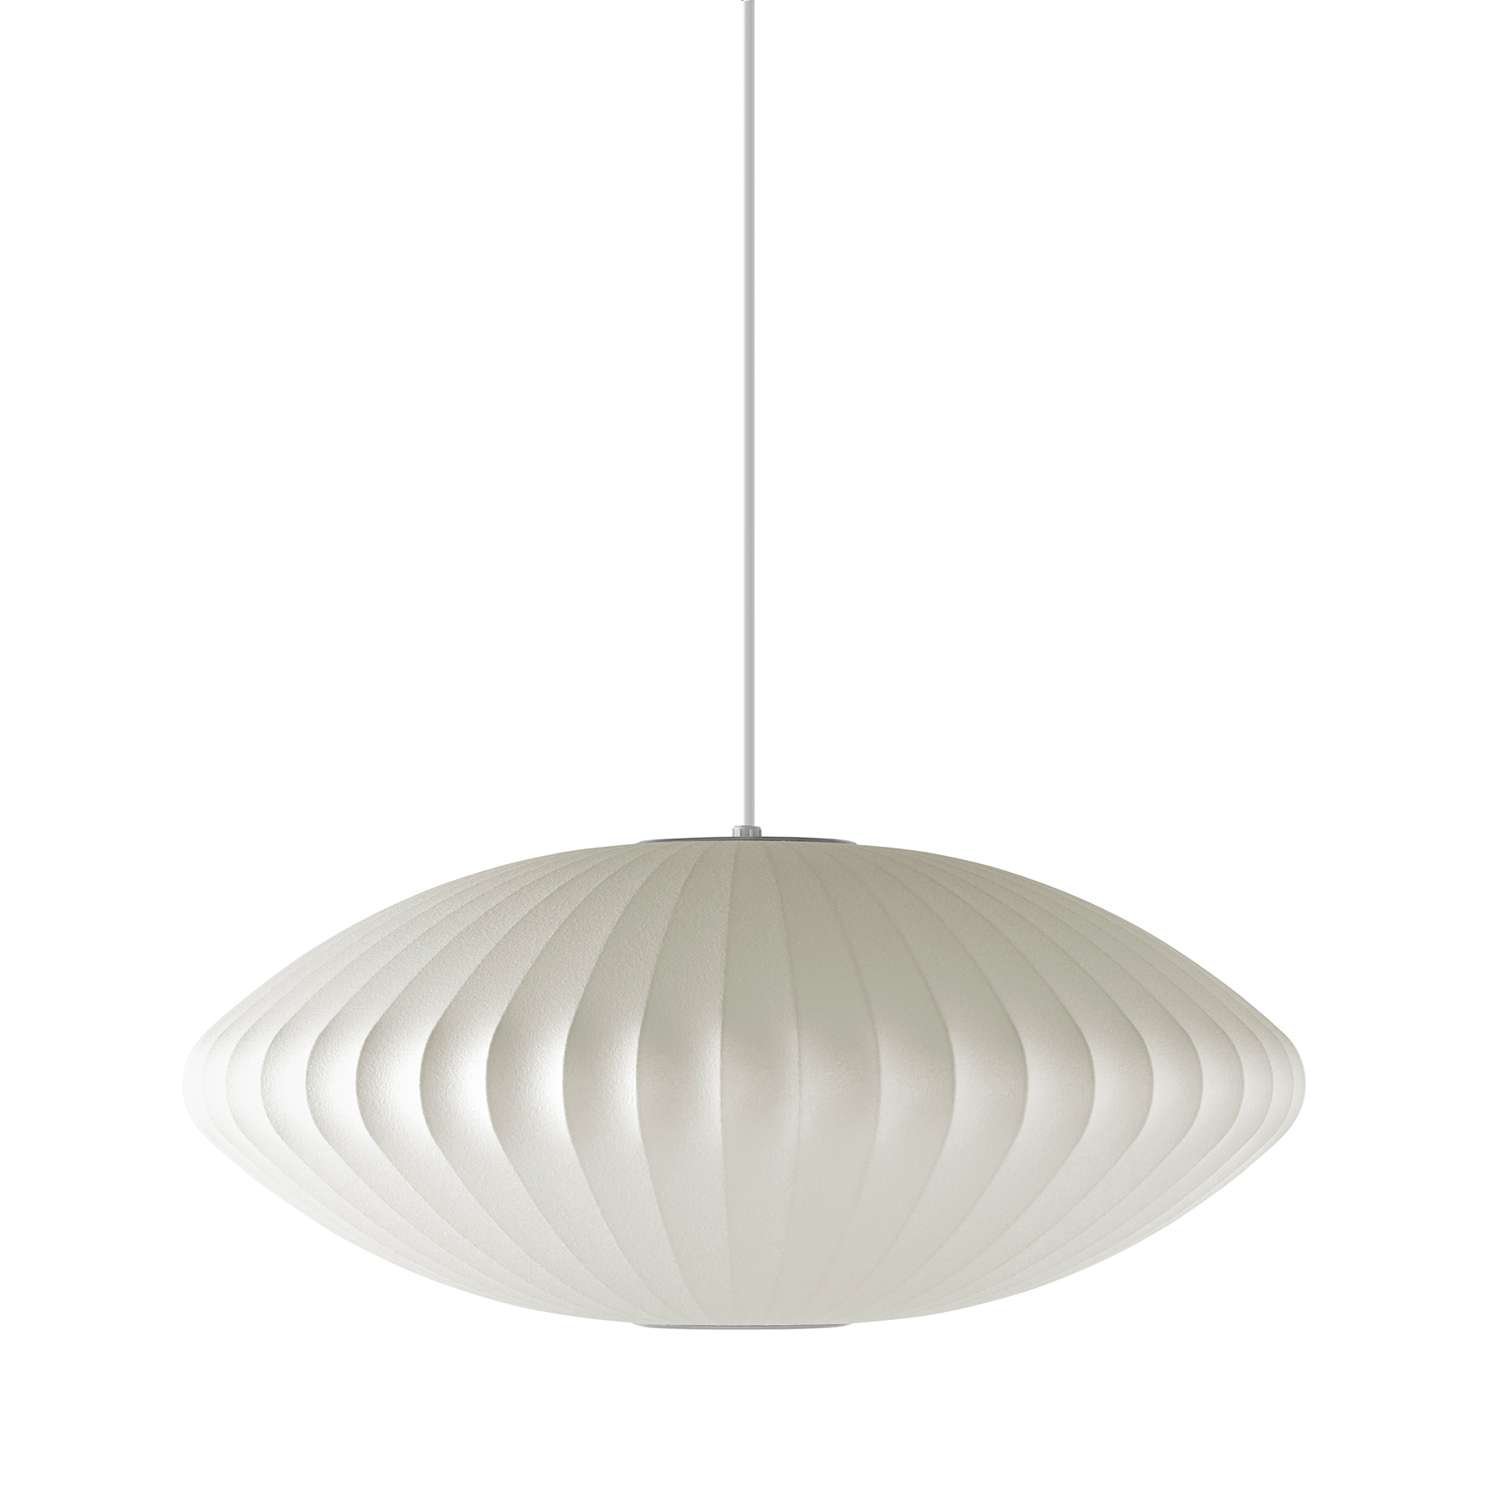 559a70c8cd46 George Nelson Bubble Lamp Saucer Pendant - Ceiling Pendant Fixtures -  Amazon.com